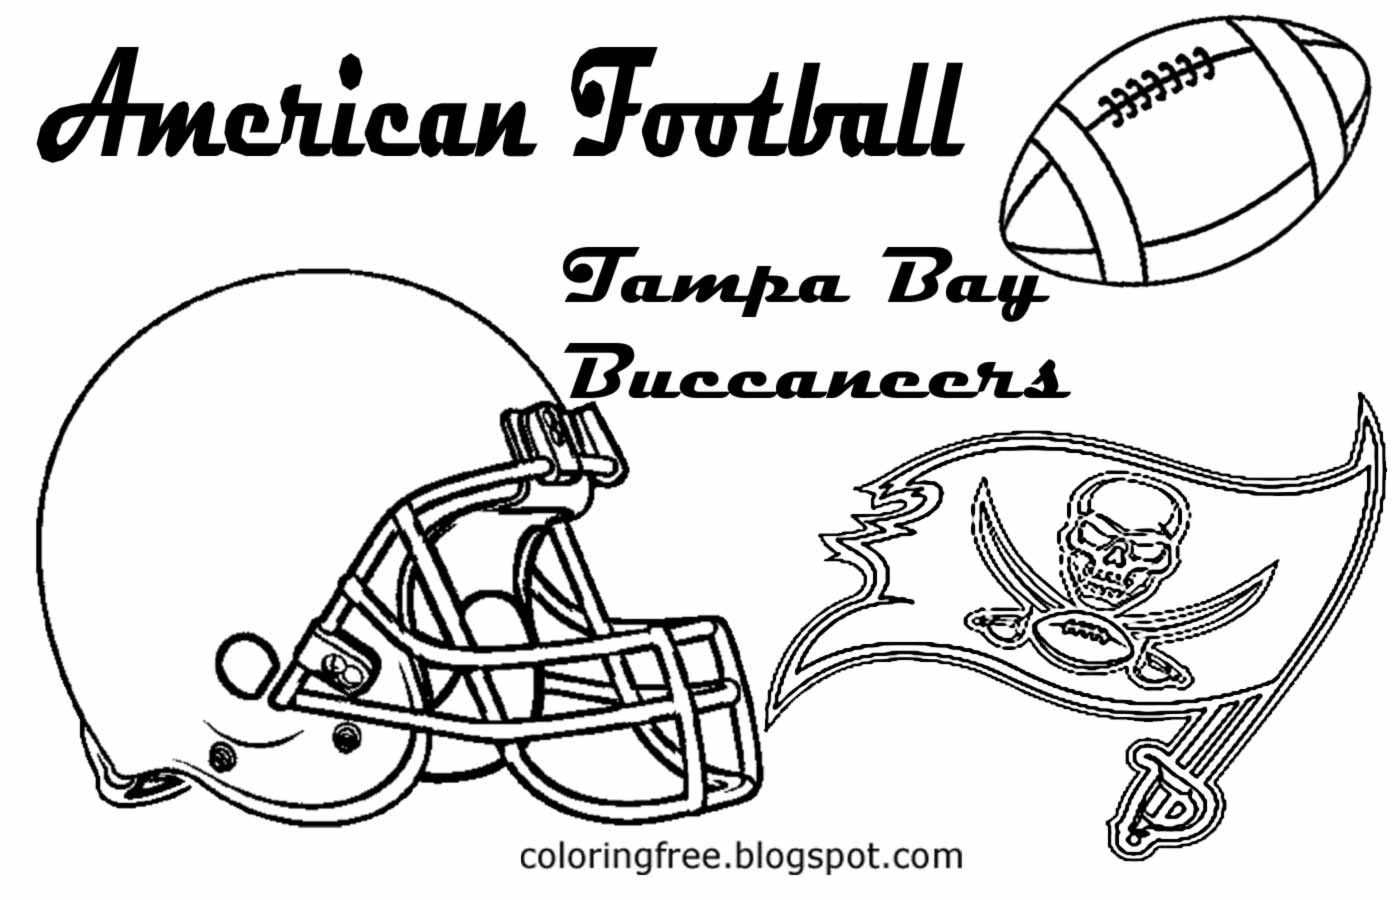 tampa bay buccaneers coloring pages | Tampa Bay Buccaneers Coloring Pages - Learny Kids